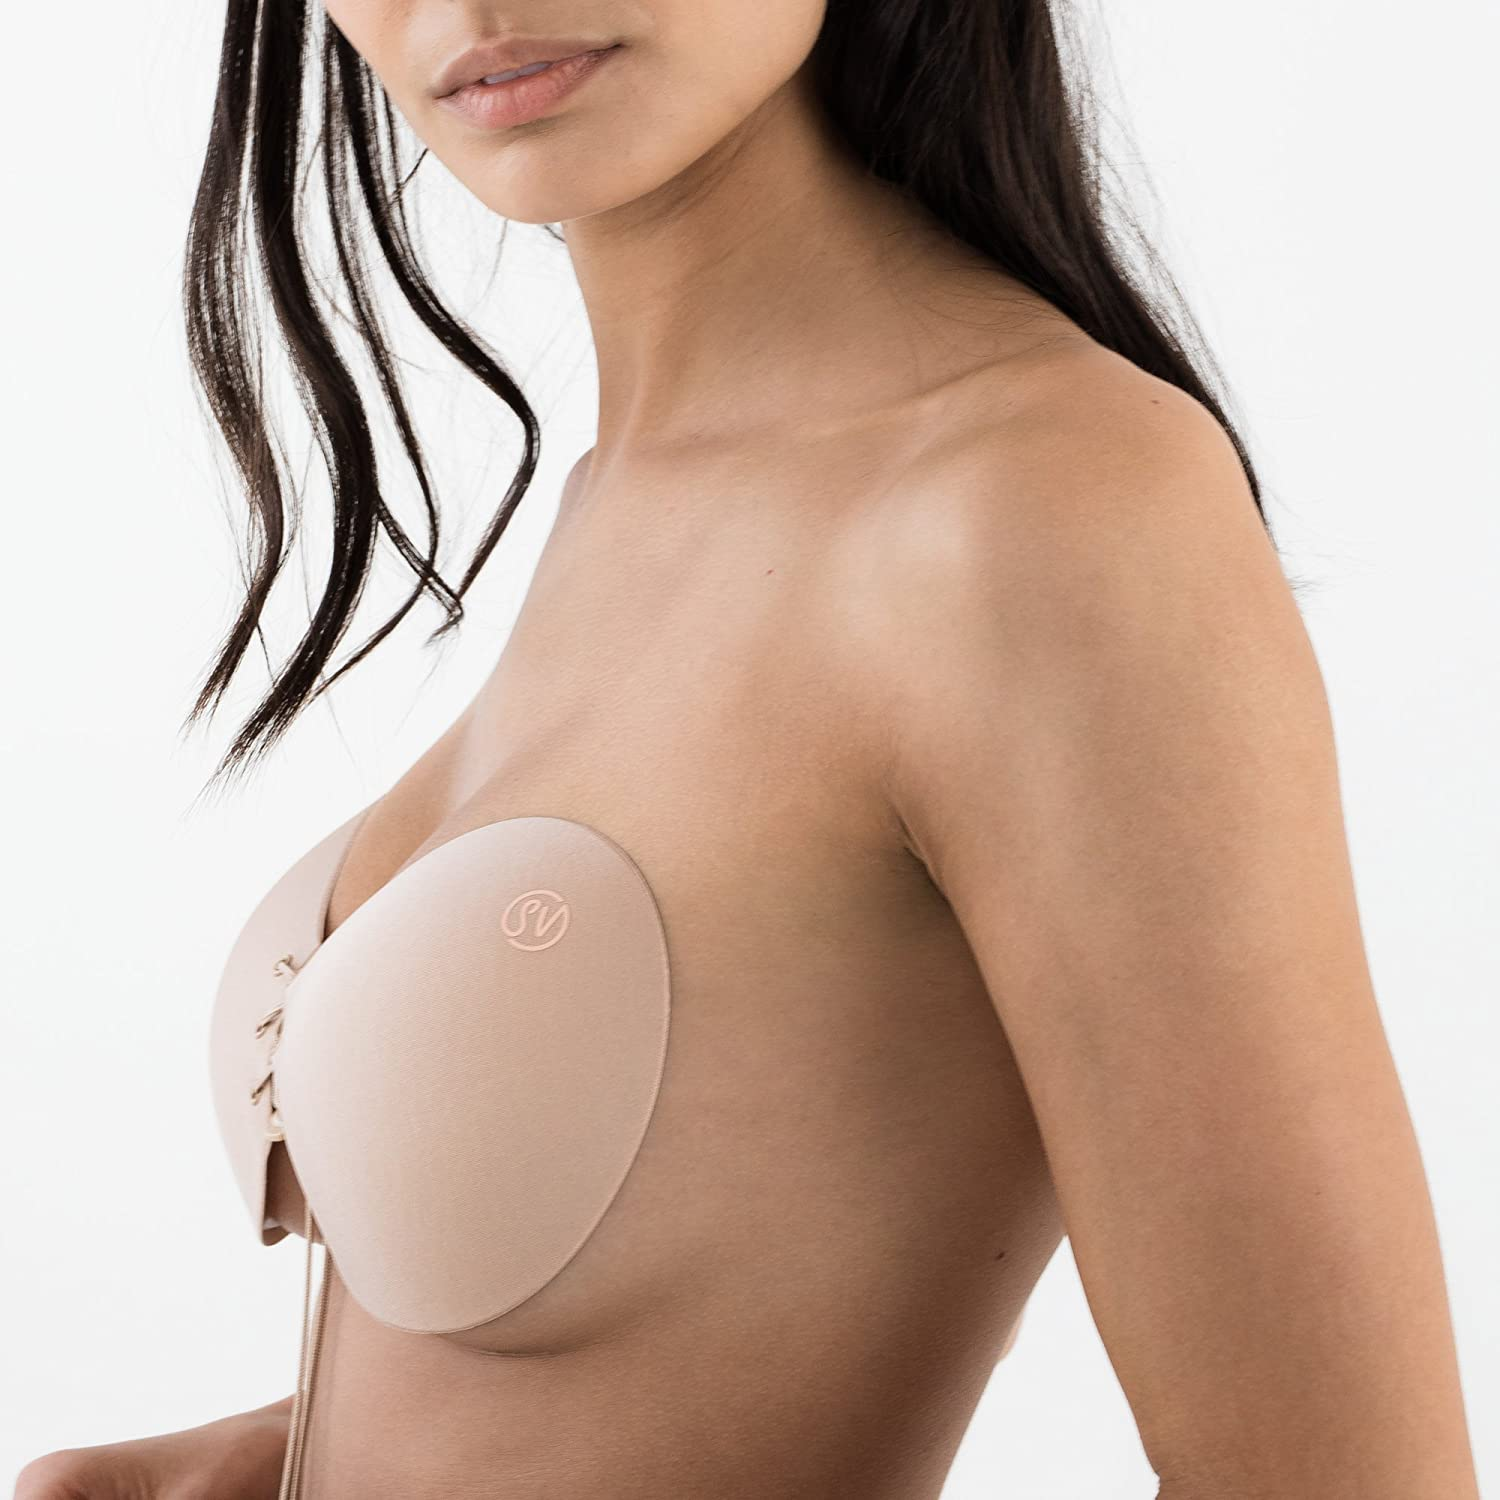 Sneaky Vaunt The Original Stick On Push up Bra Backless Strapless Cleavage